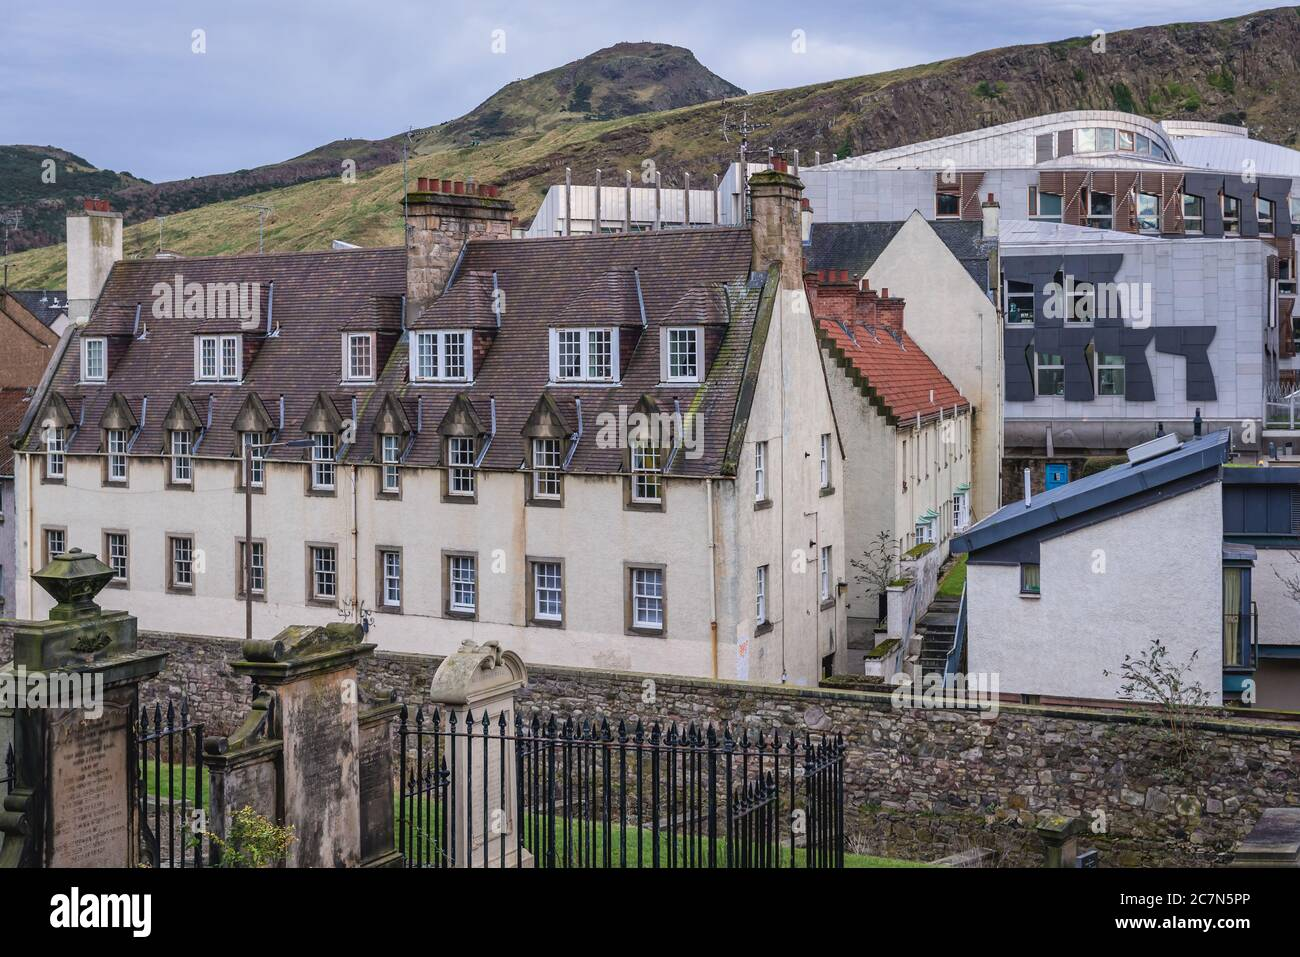 View from New Calton Burial Ground on the southeast slopes of Calton Hill in Edinburgh, the capital of Scotland, part of United Kingdom Stock Photo